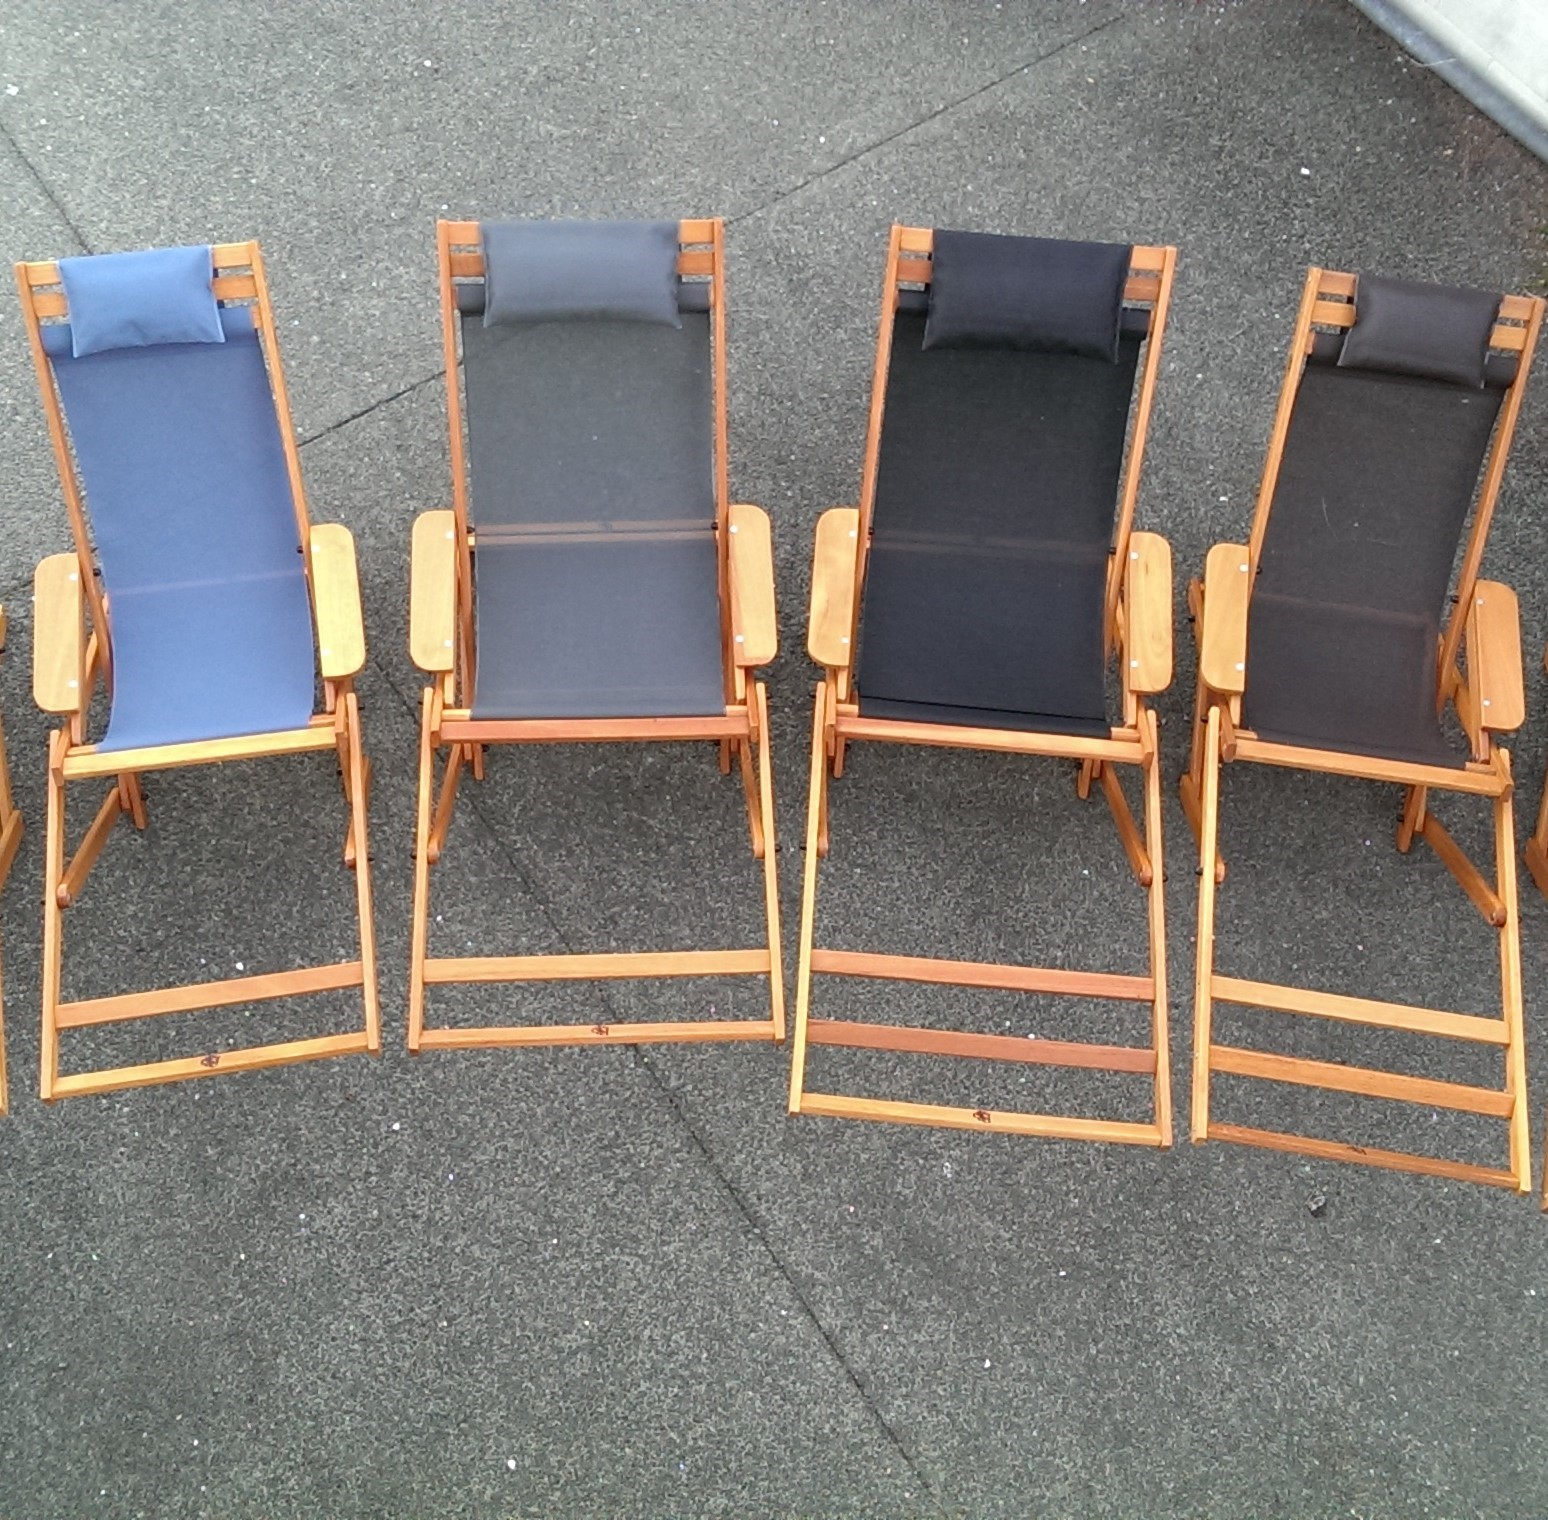 D The Broad Deluxe Lounger